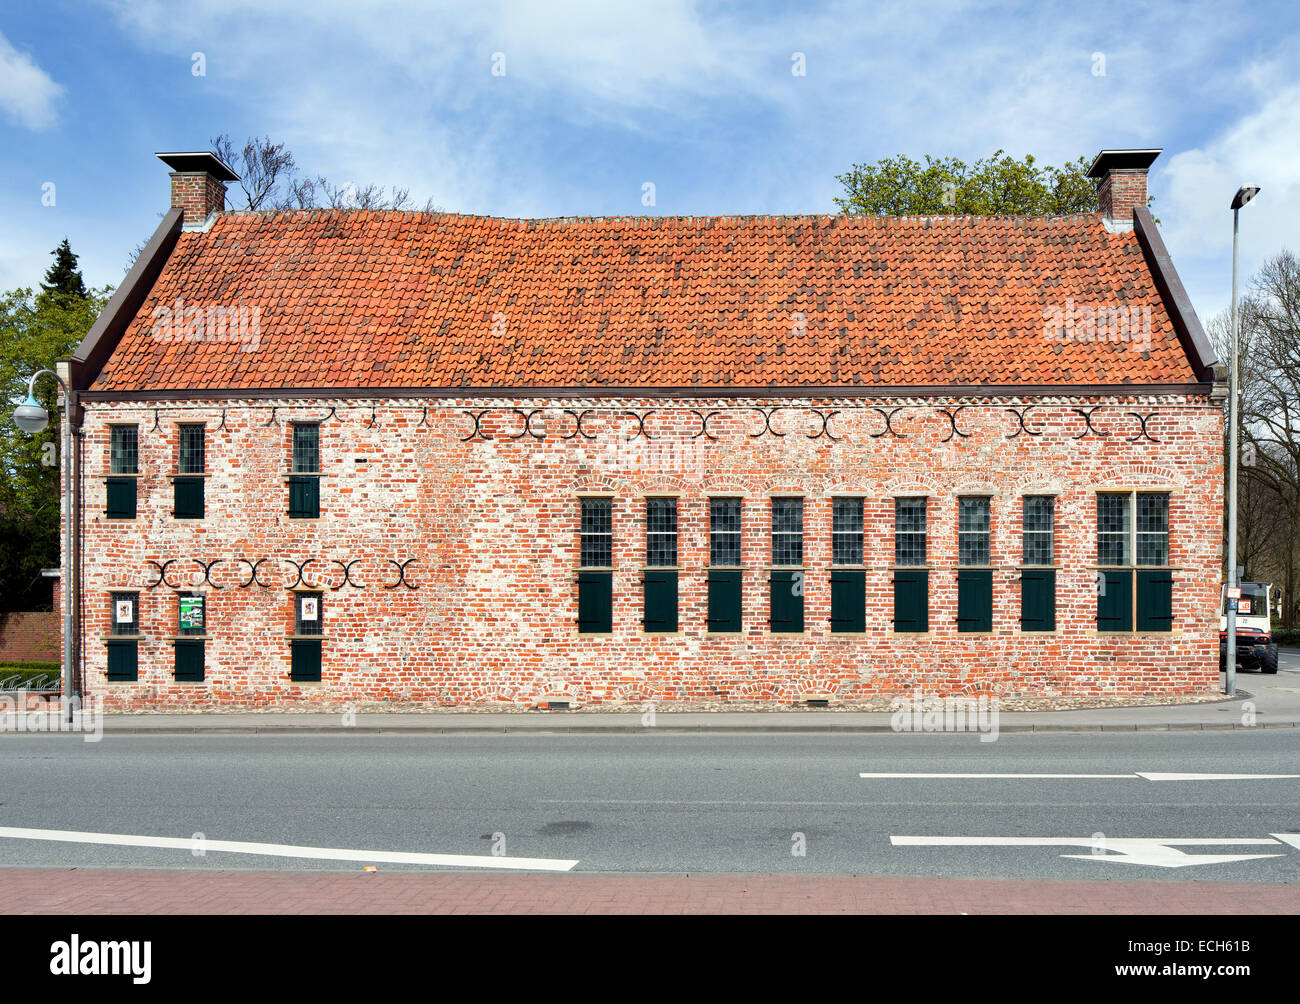 Norder Bürgerhaus from 1550, oldest preserved building in the city, the seat of the Norden Community Foundation, - Stock Image